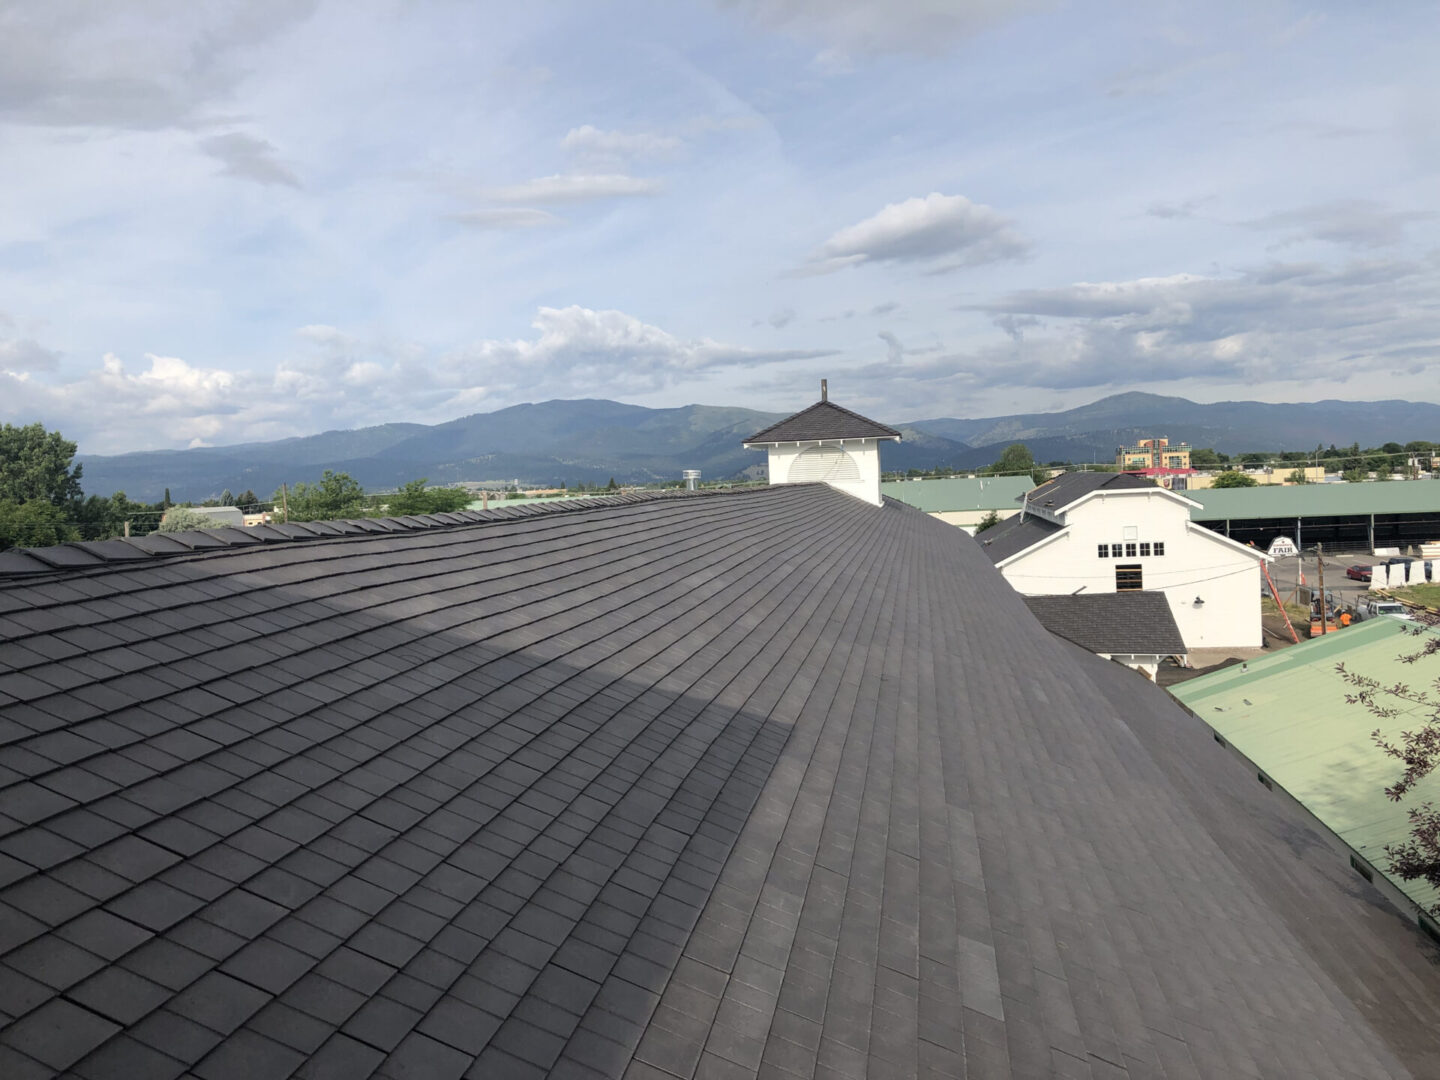 Roofing church